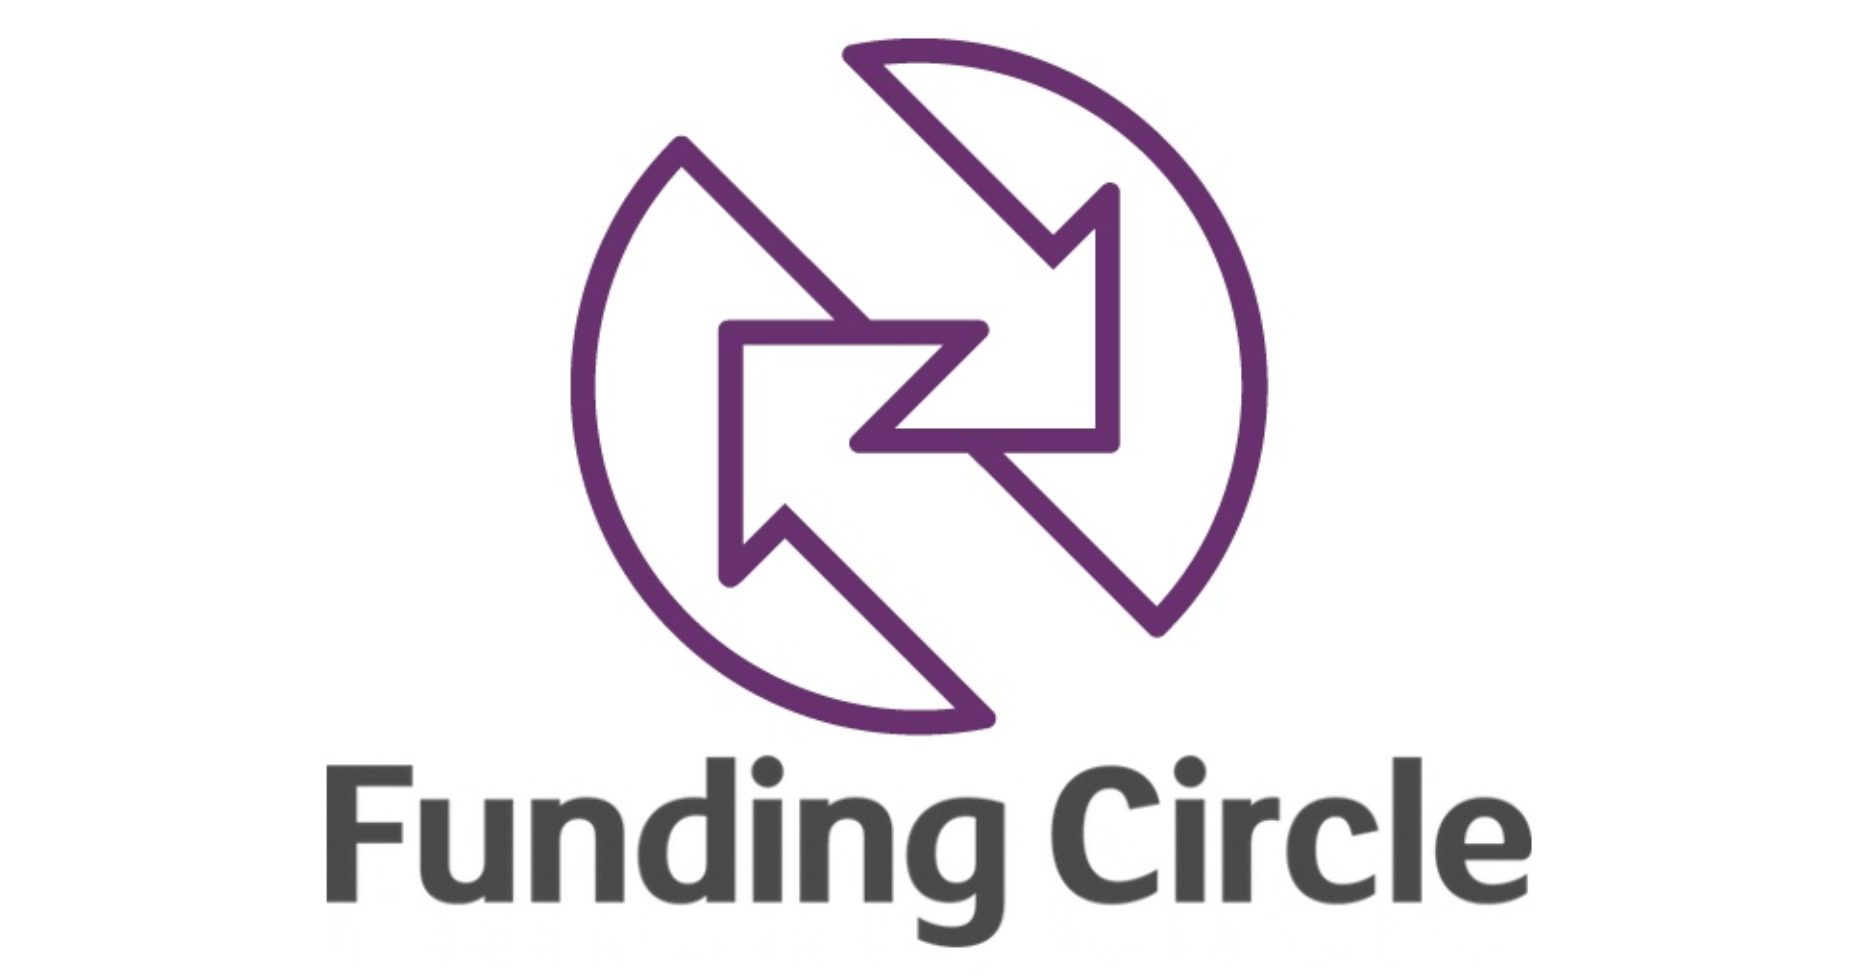 Funding Circle Account Information